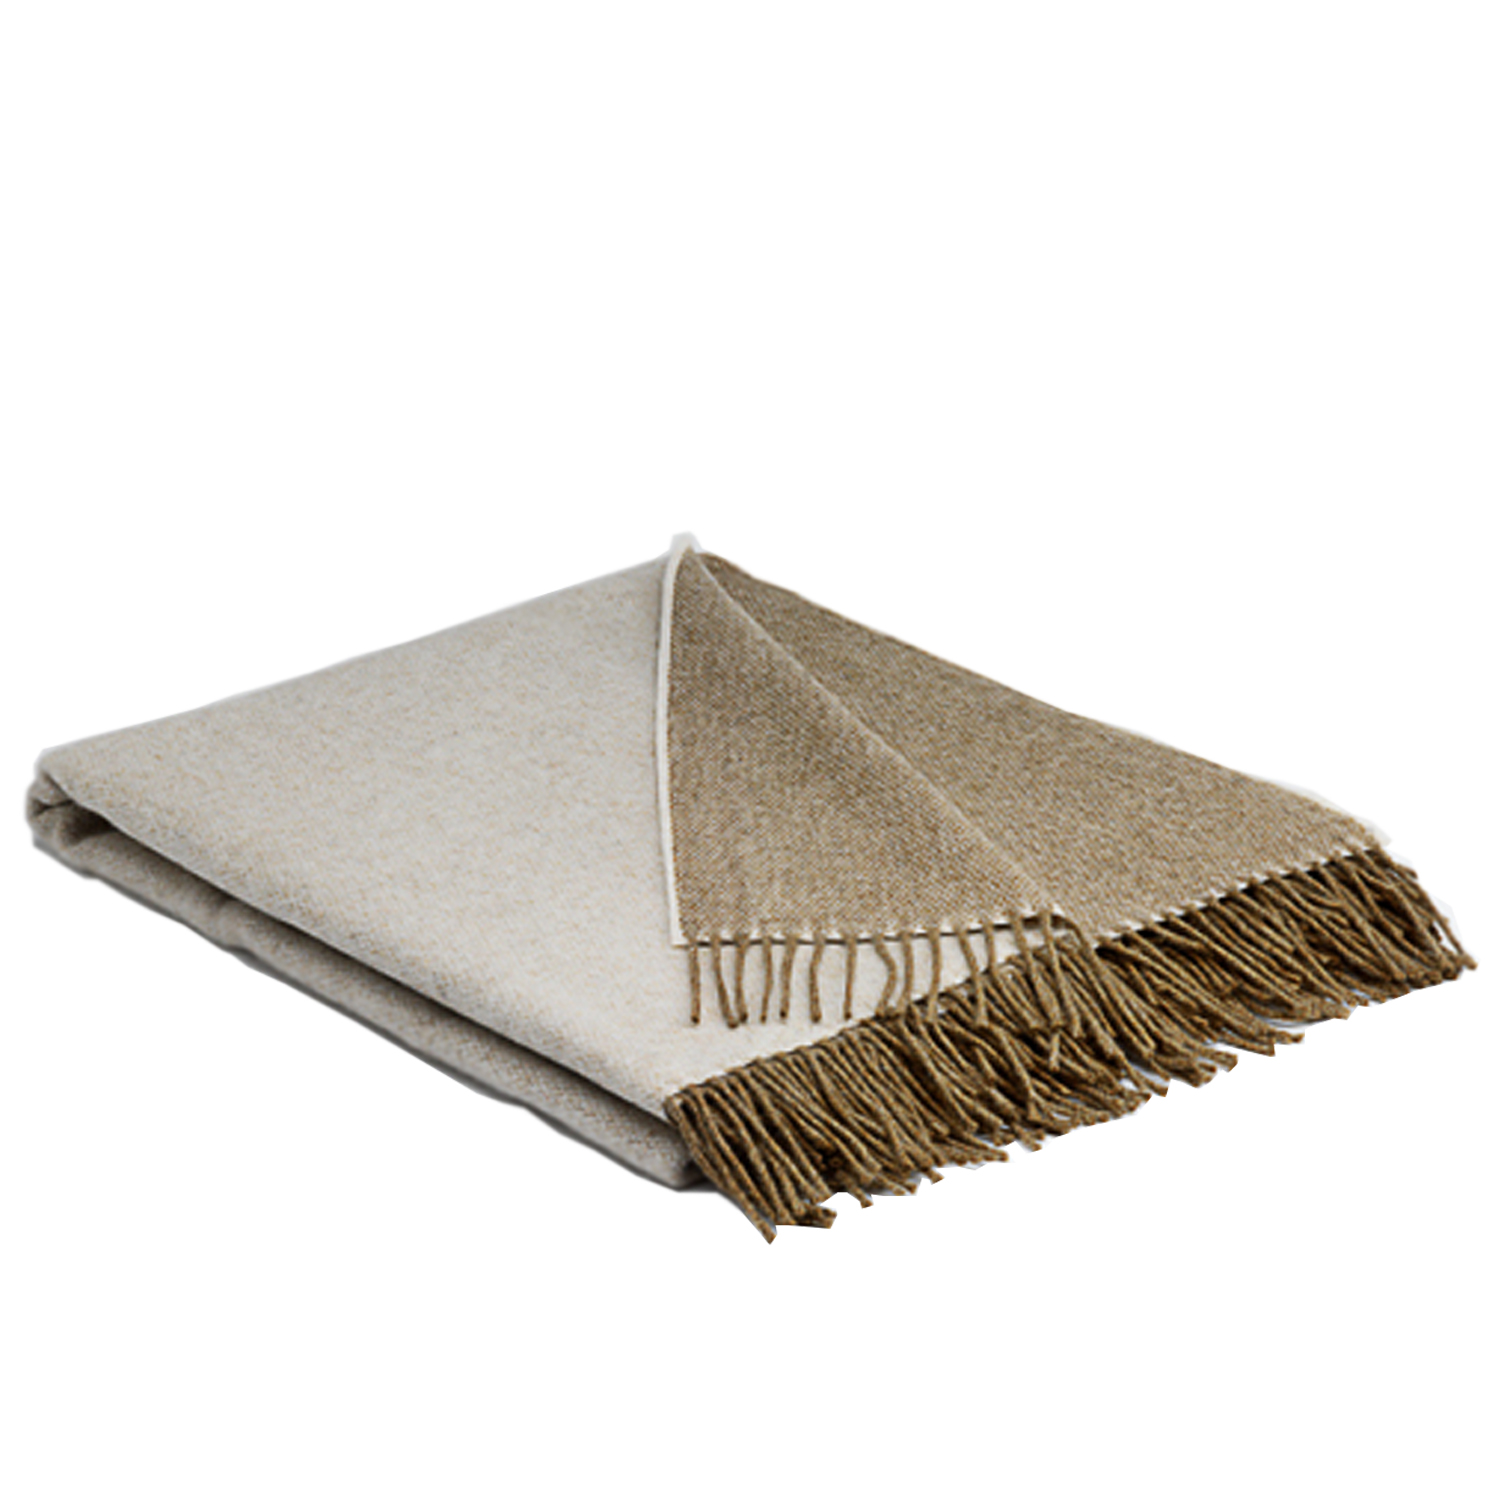 00327 McNutt of Donegal Latte Reversible Supersoft lambswool throw